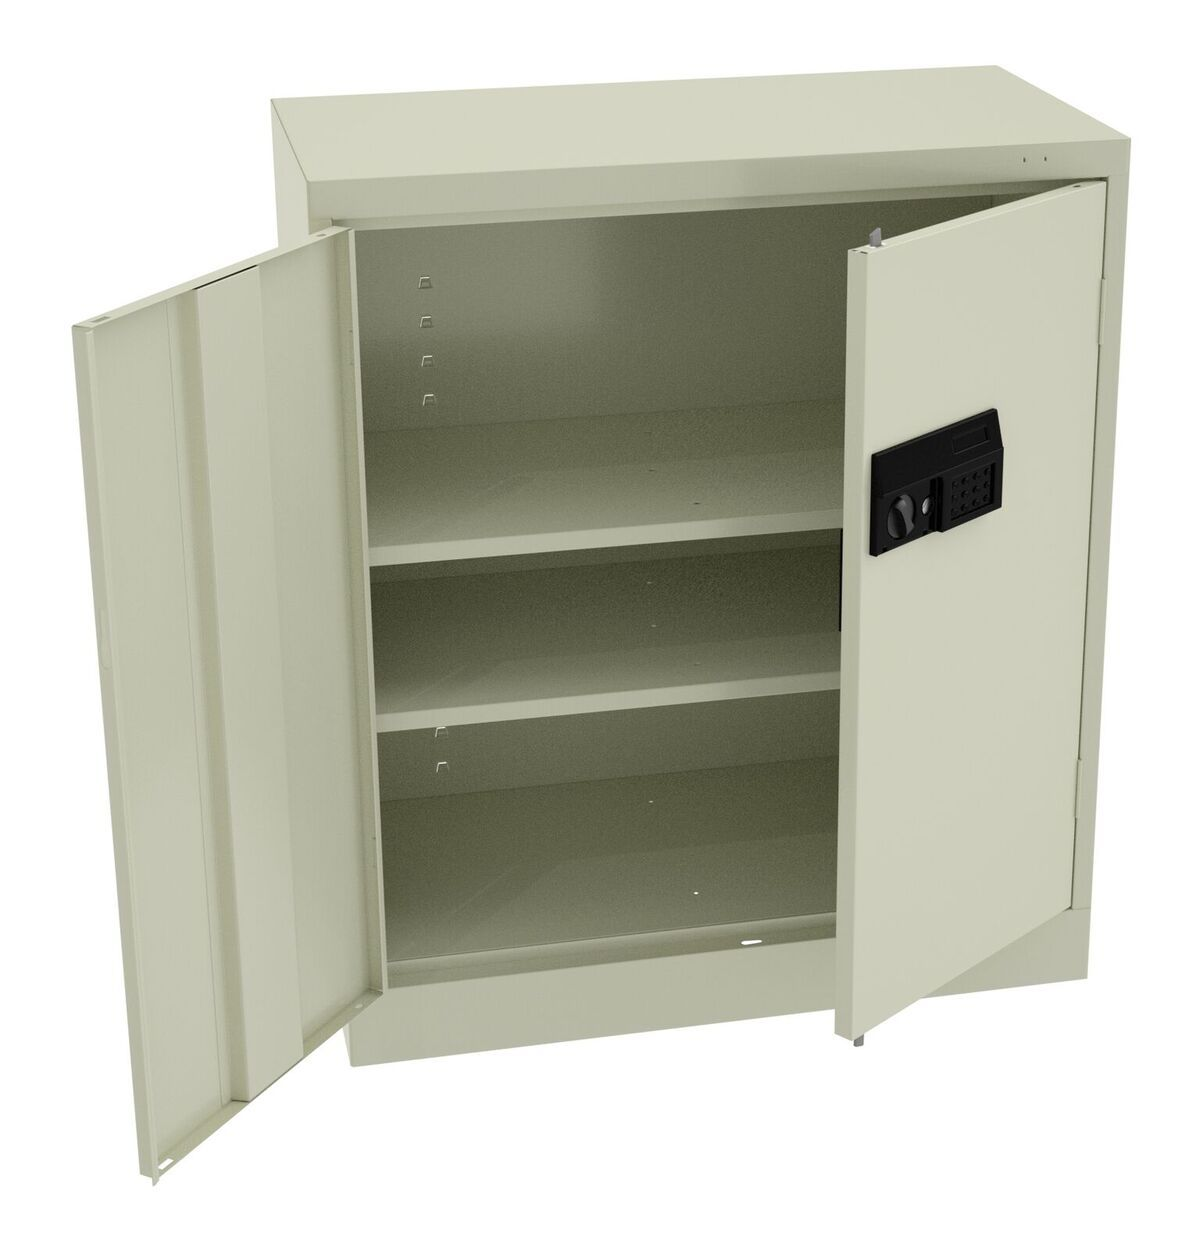 Keyless Storage Cabinets  sc 1 st  Medicus Health & Medical Storage Cabinets